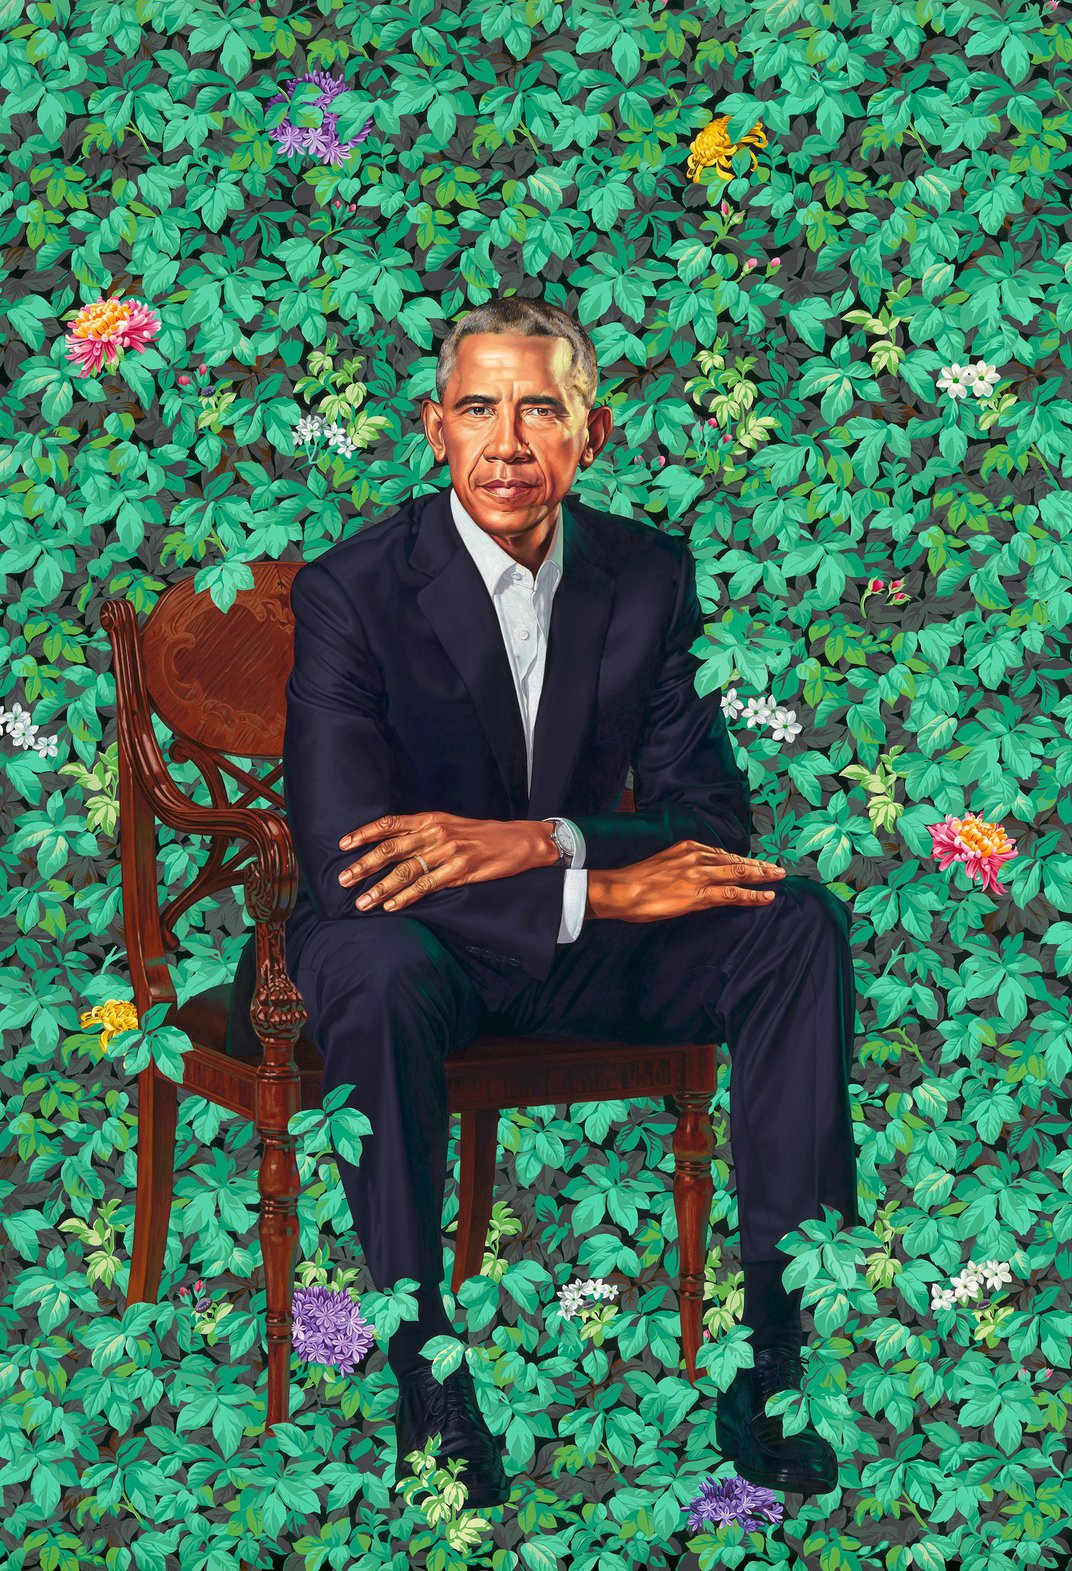 The Obamas' Official Portraits Break New Ground With Their Boldness